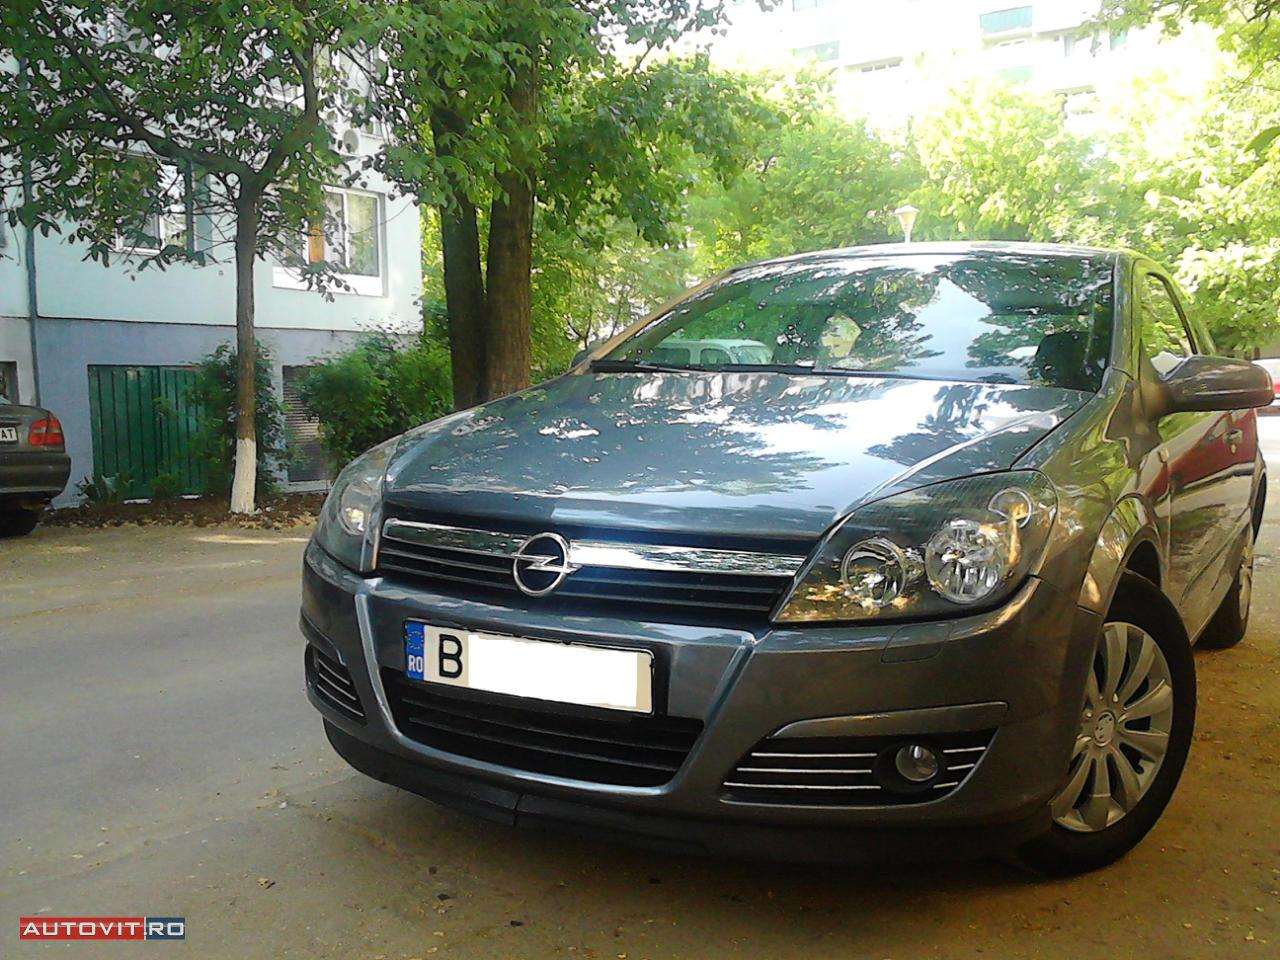 Opel Astra 1.3 CDTI photo 13